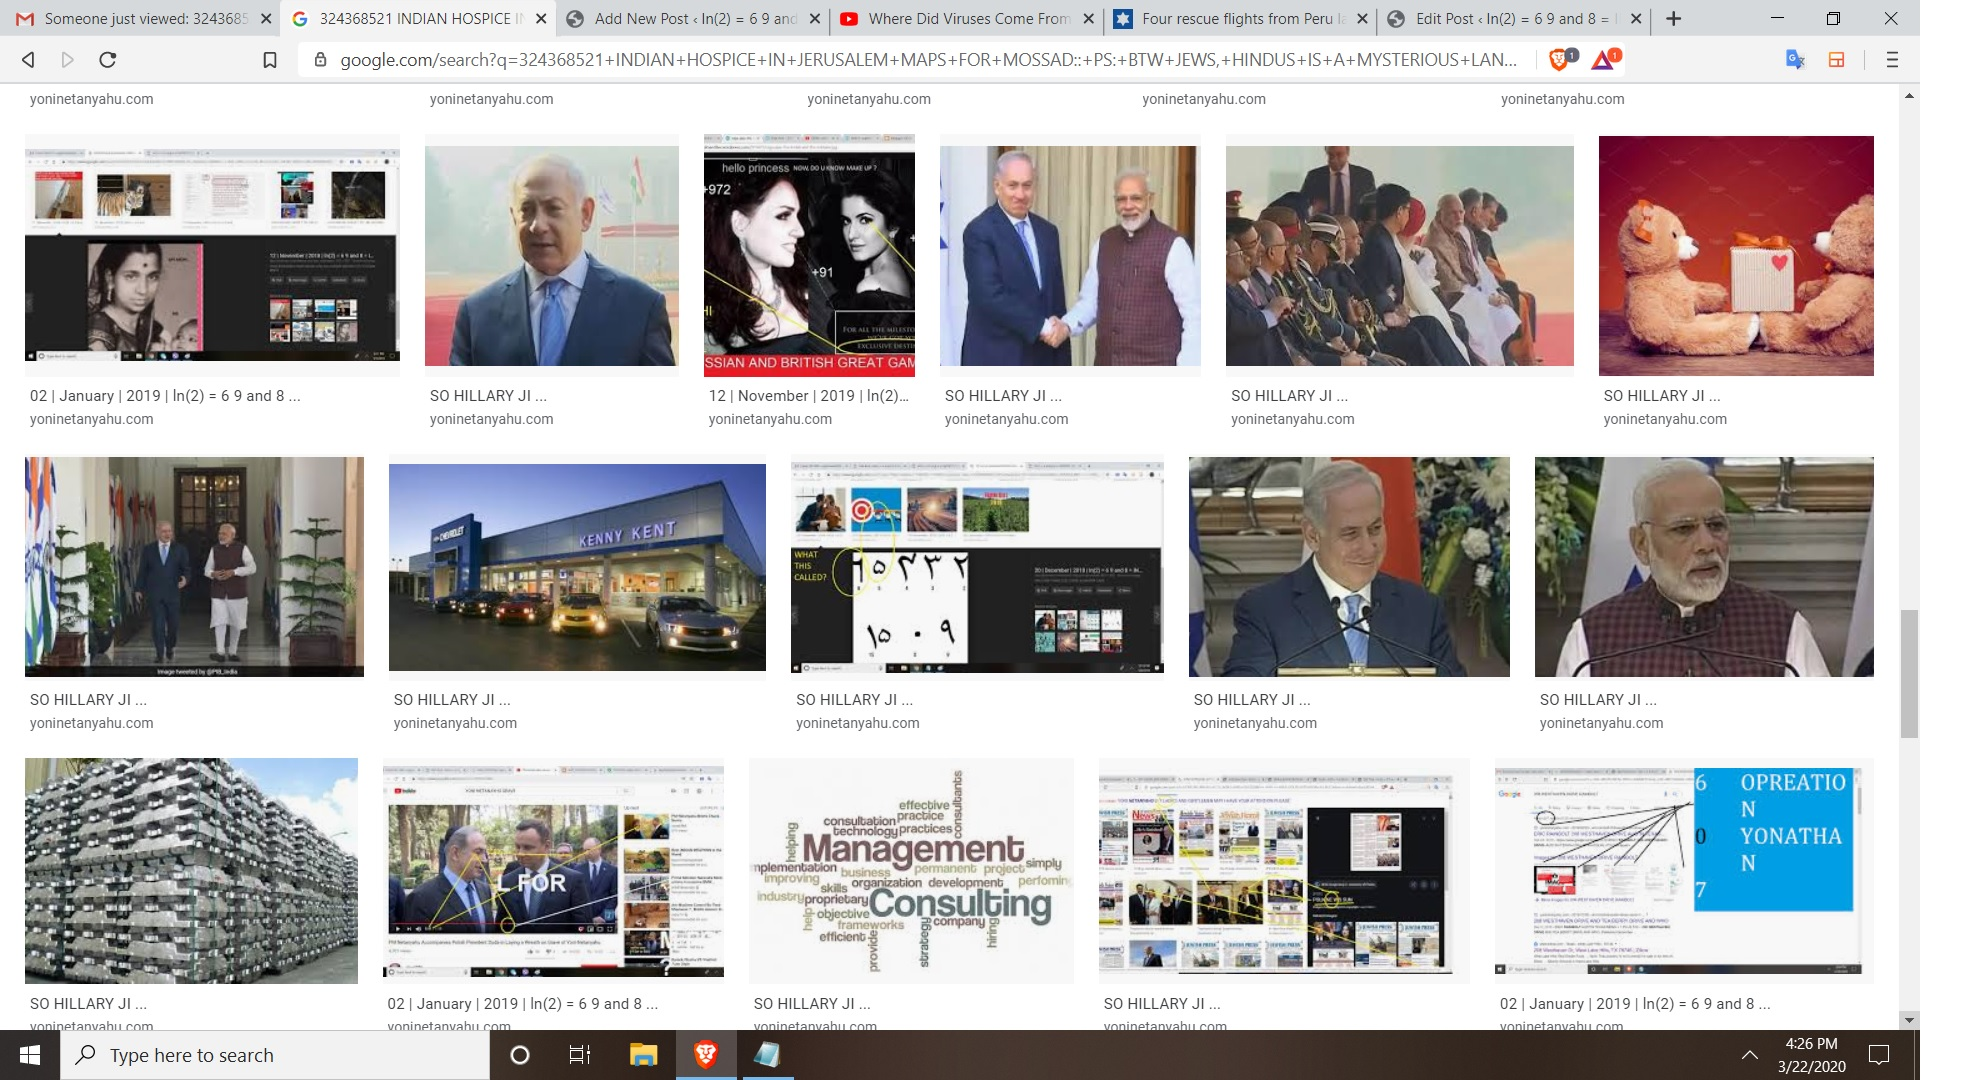 324368521 INDIAN HOSPICE IN JERUSALEM MAPS FOR MOSSAD PS - BTW JEWS, HINDUS IS A MYSTERIOUS LANDS - JUST SO U KNOW NO LESS THAN SIARELIES OR JEWS